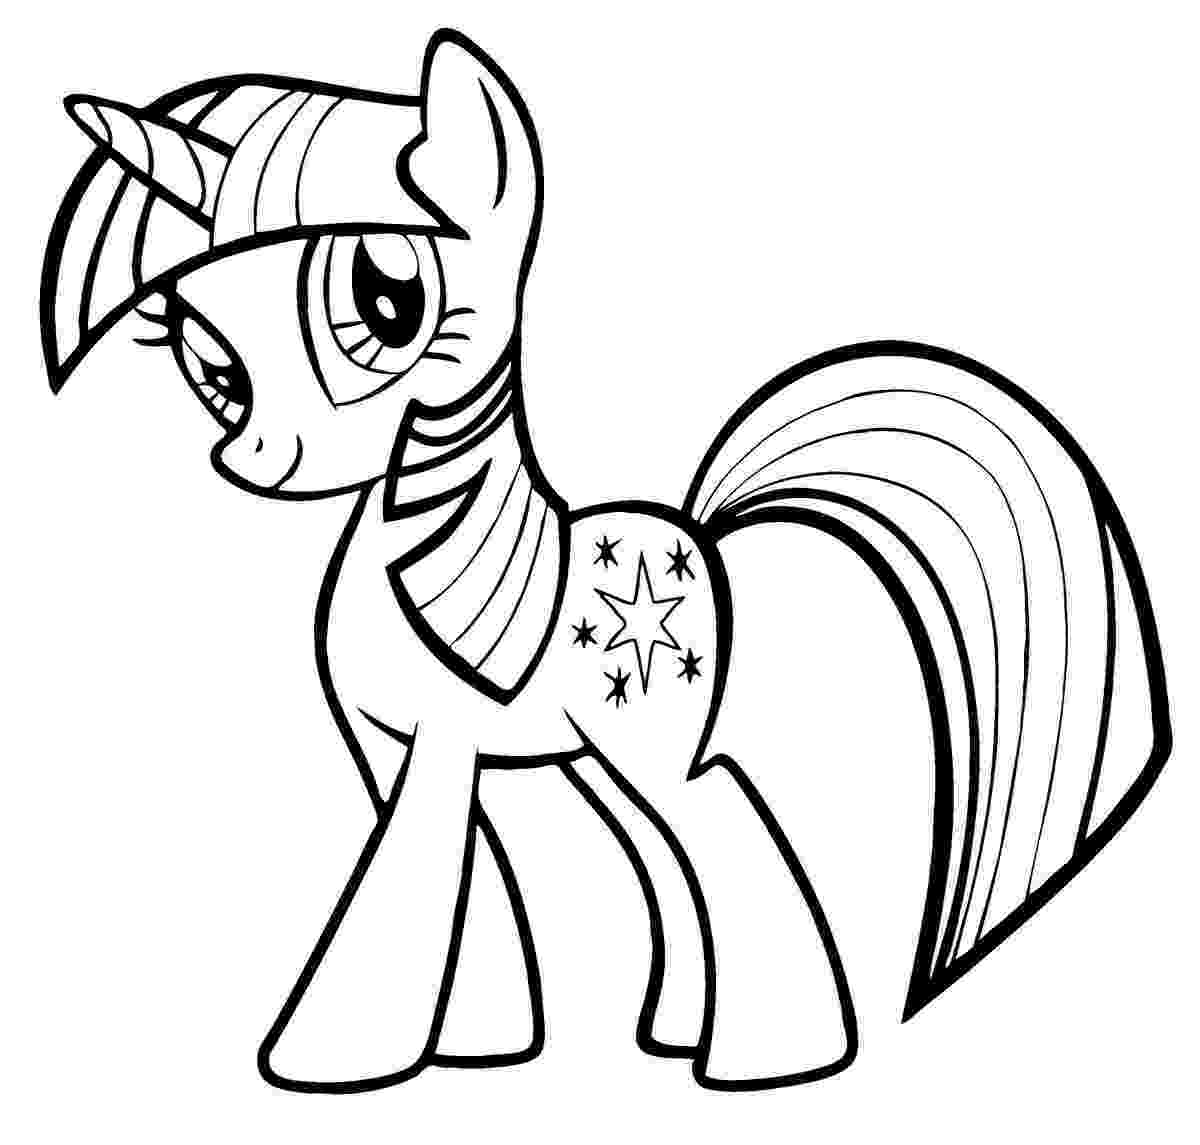 coloring pages of my little pony my little pony fluttershy coloring pages minister coloring little pony pages of coloring my